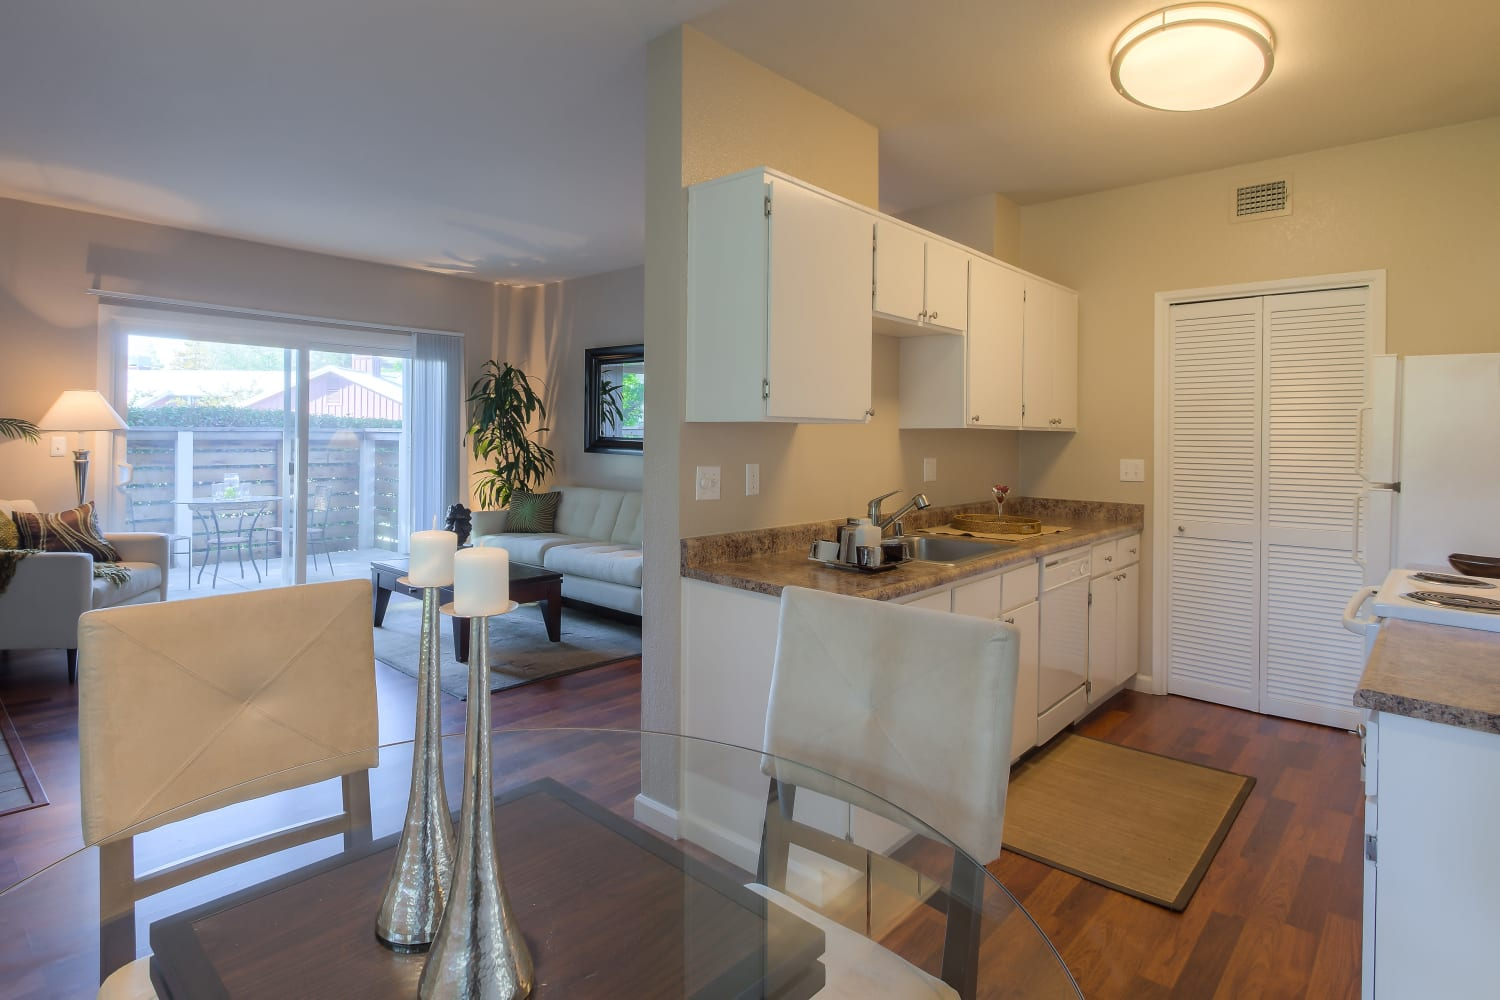 Cotton Wood Apartments in Dublin, California, offer modern finishes in the kitchen and throughout